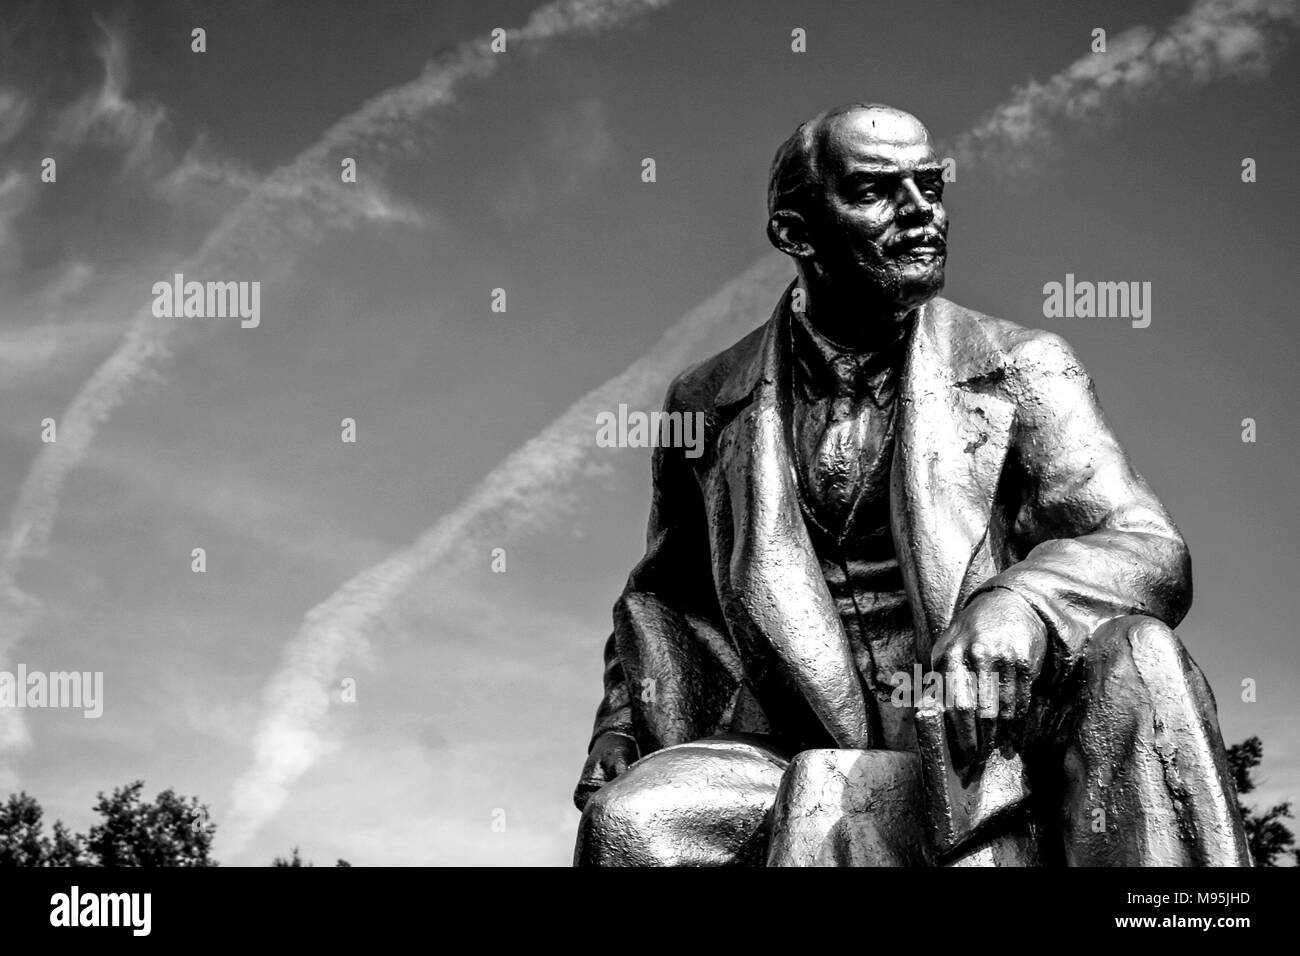 A black and white image of a statue Lenin in a square near St Petersburg, with contrails from aircraft in the sky. Stock Photo